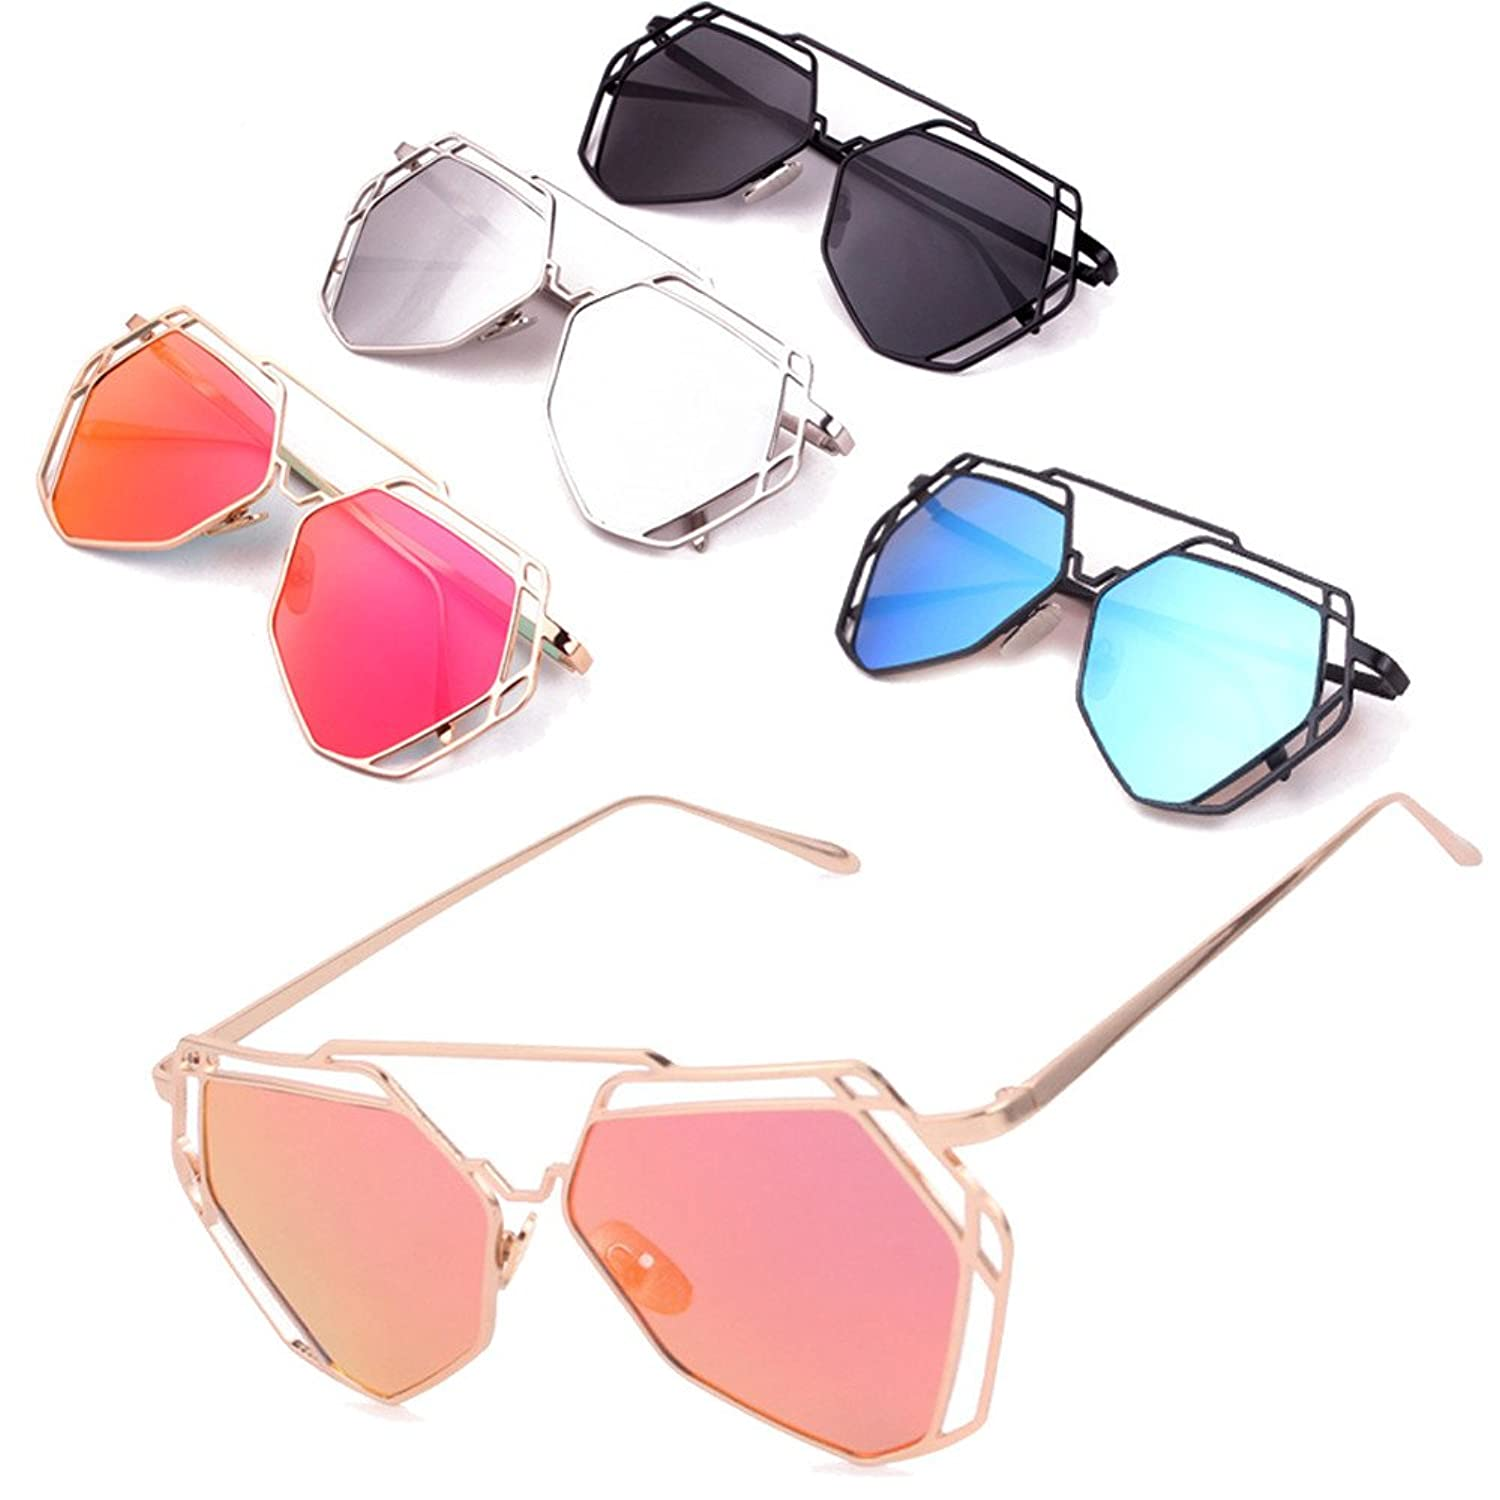 Grab Cat Eye Sunglasses for $5...